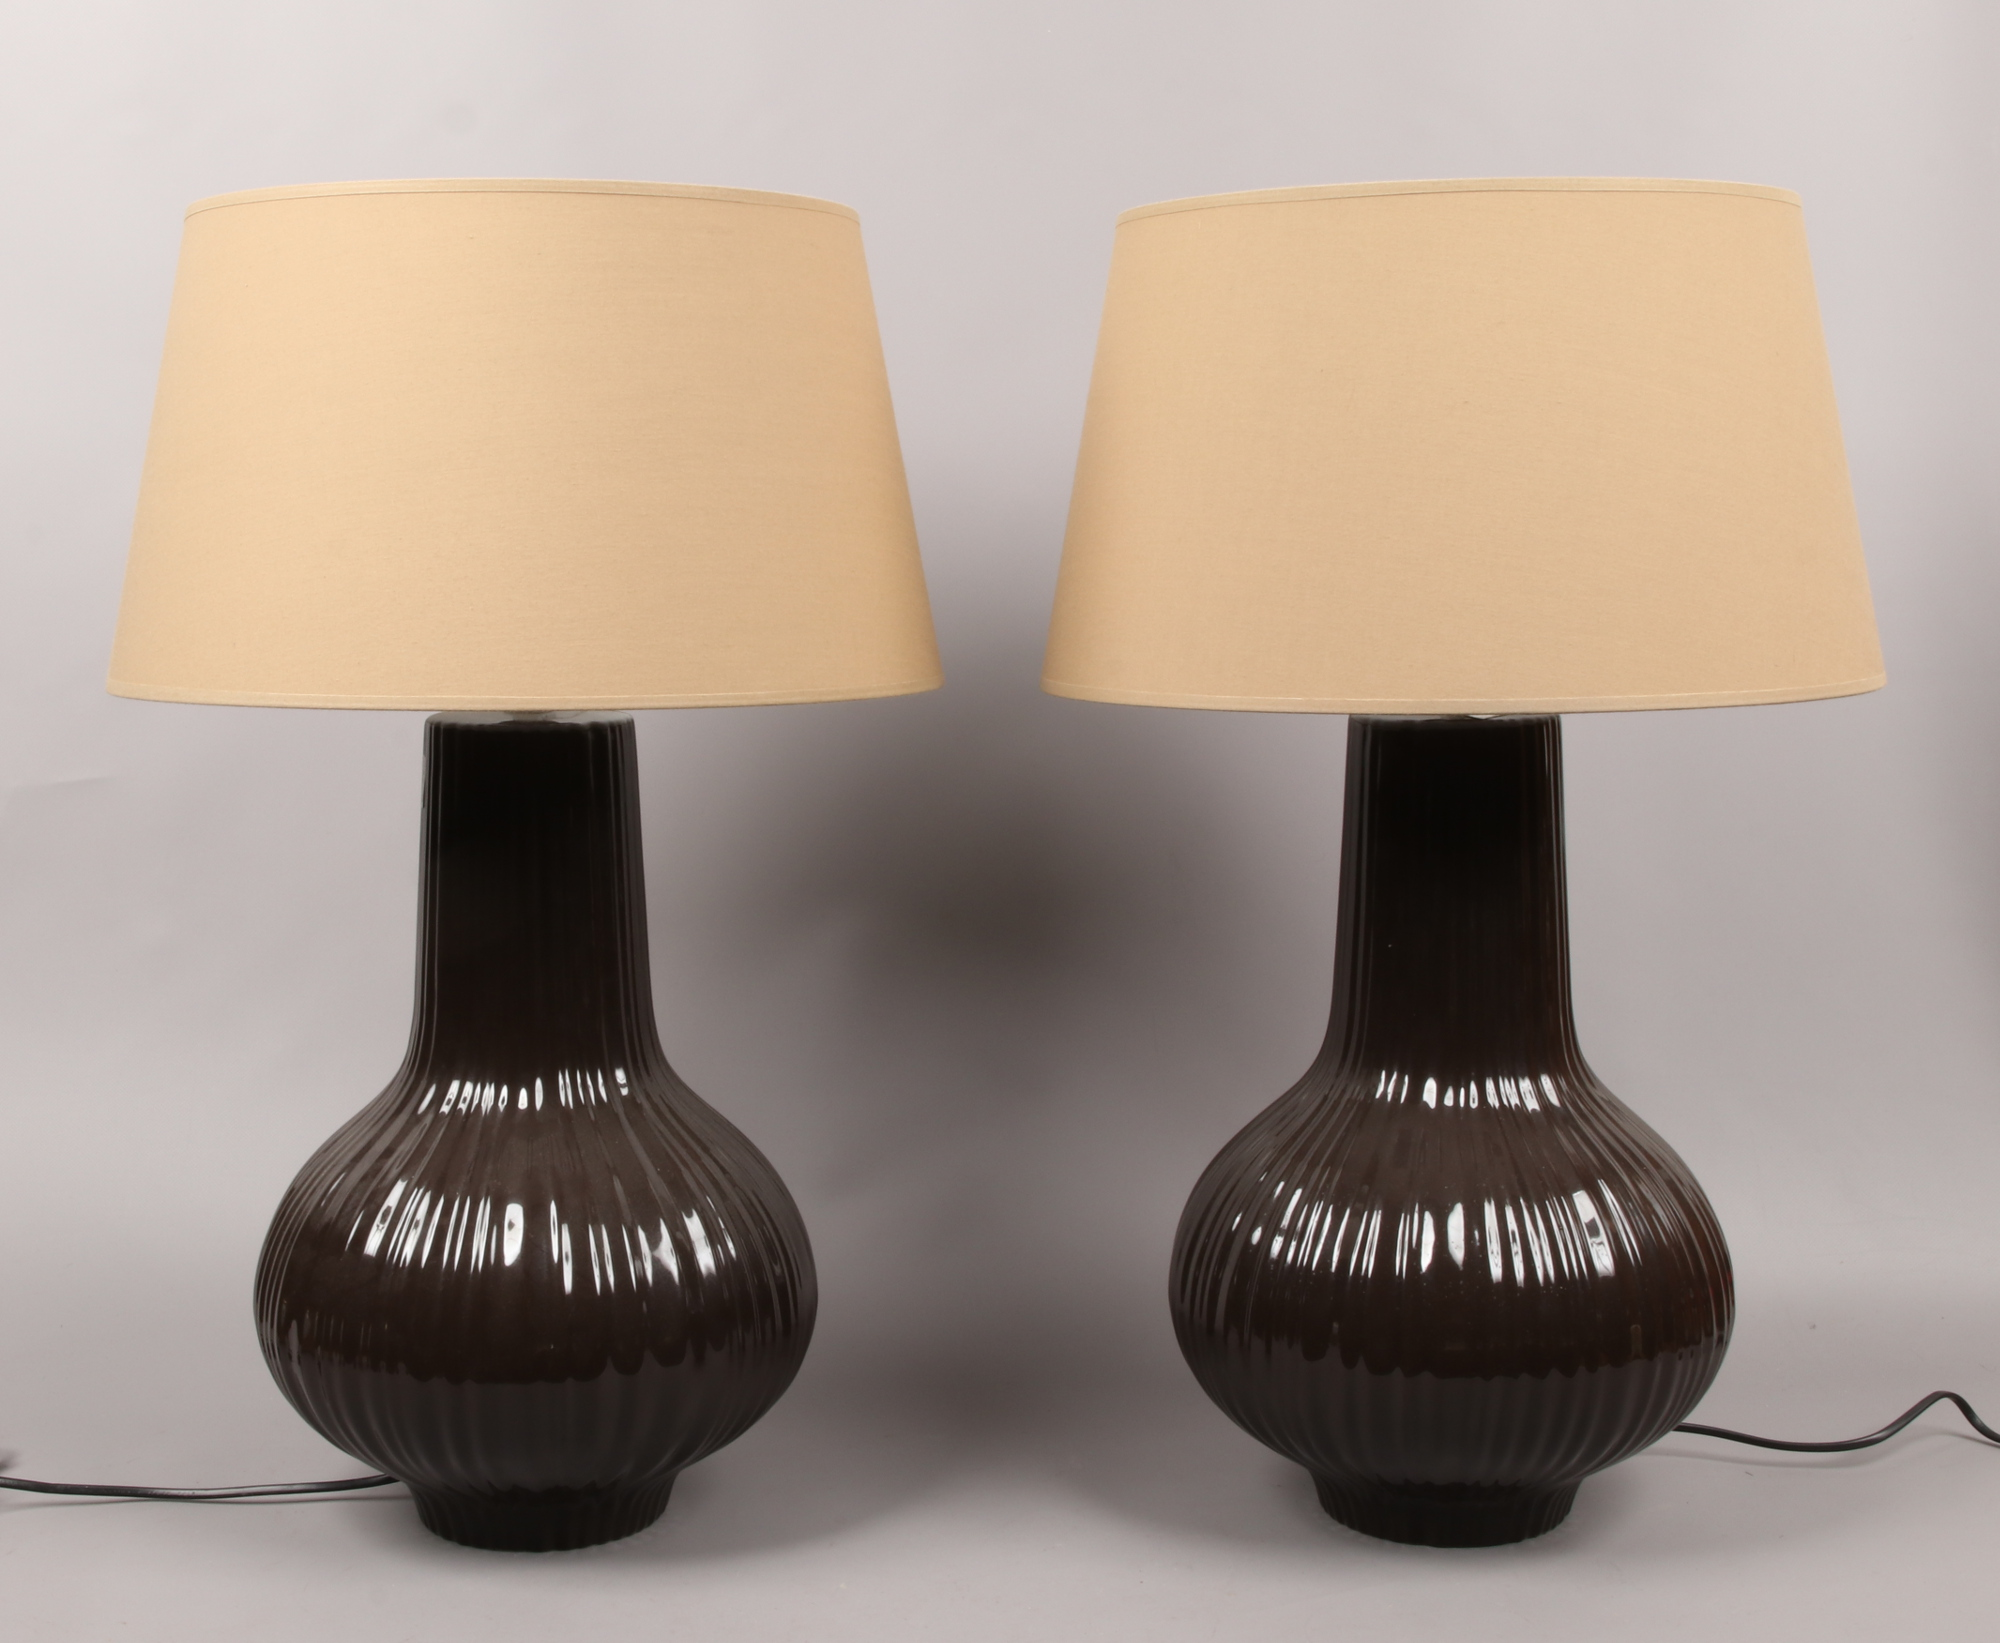 Lot 21 - A pair of glazed pottery table lamps of baluster form with reeded decoration and coffee cream